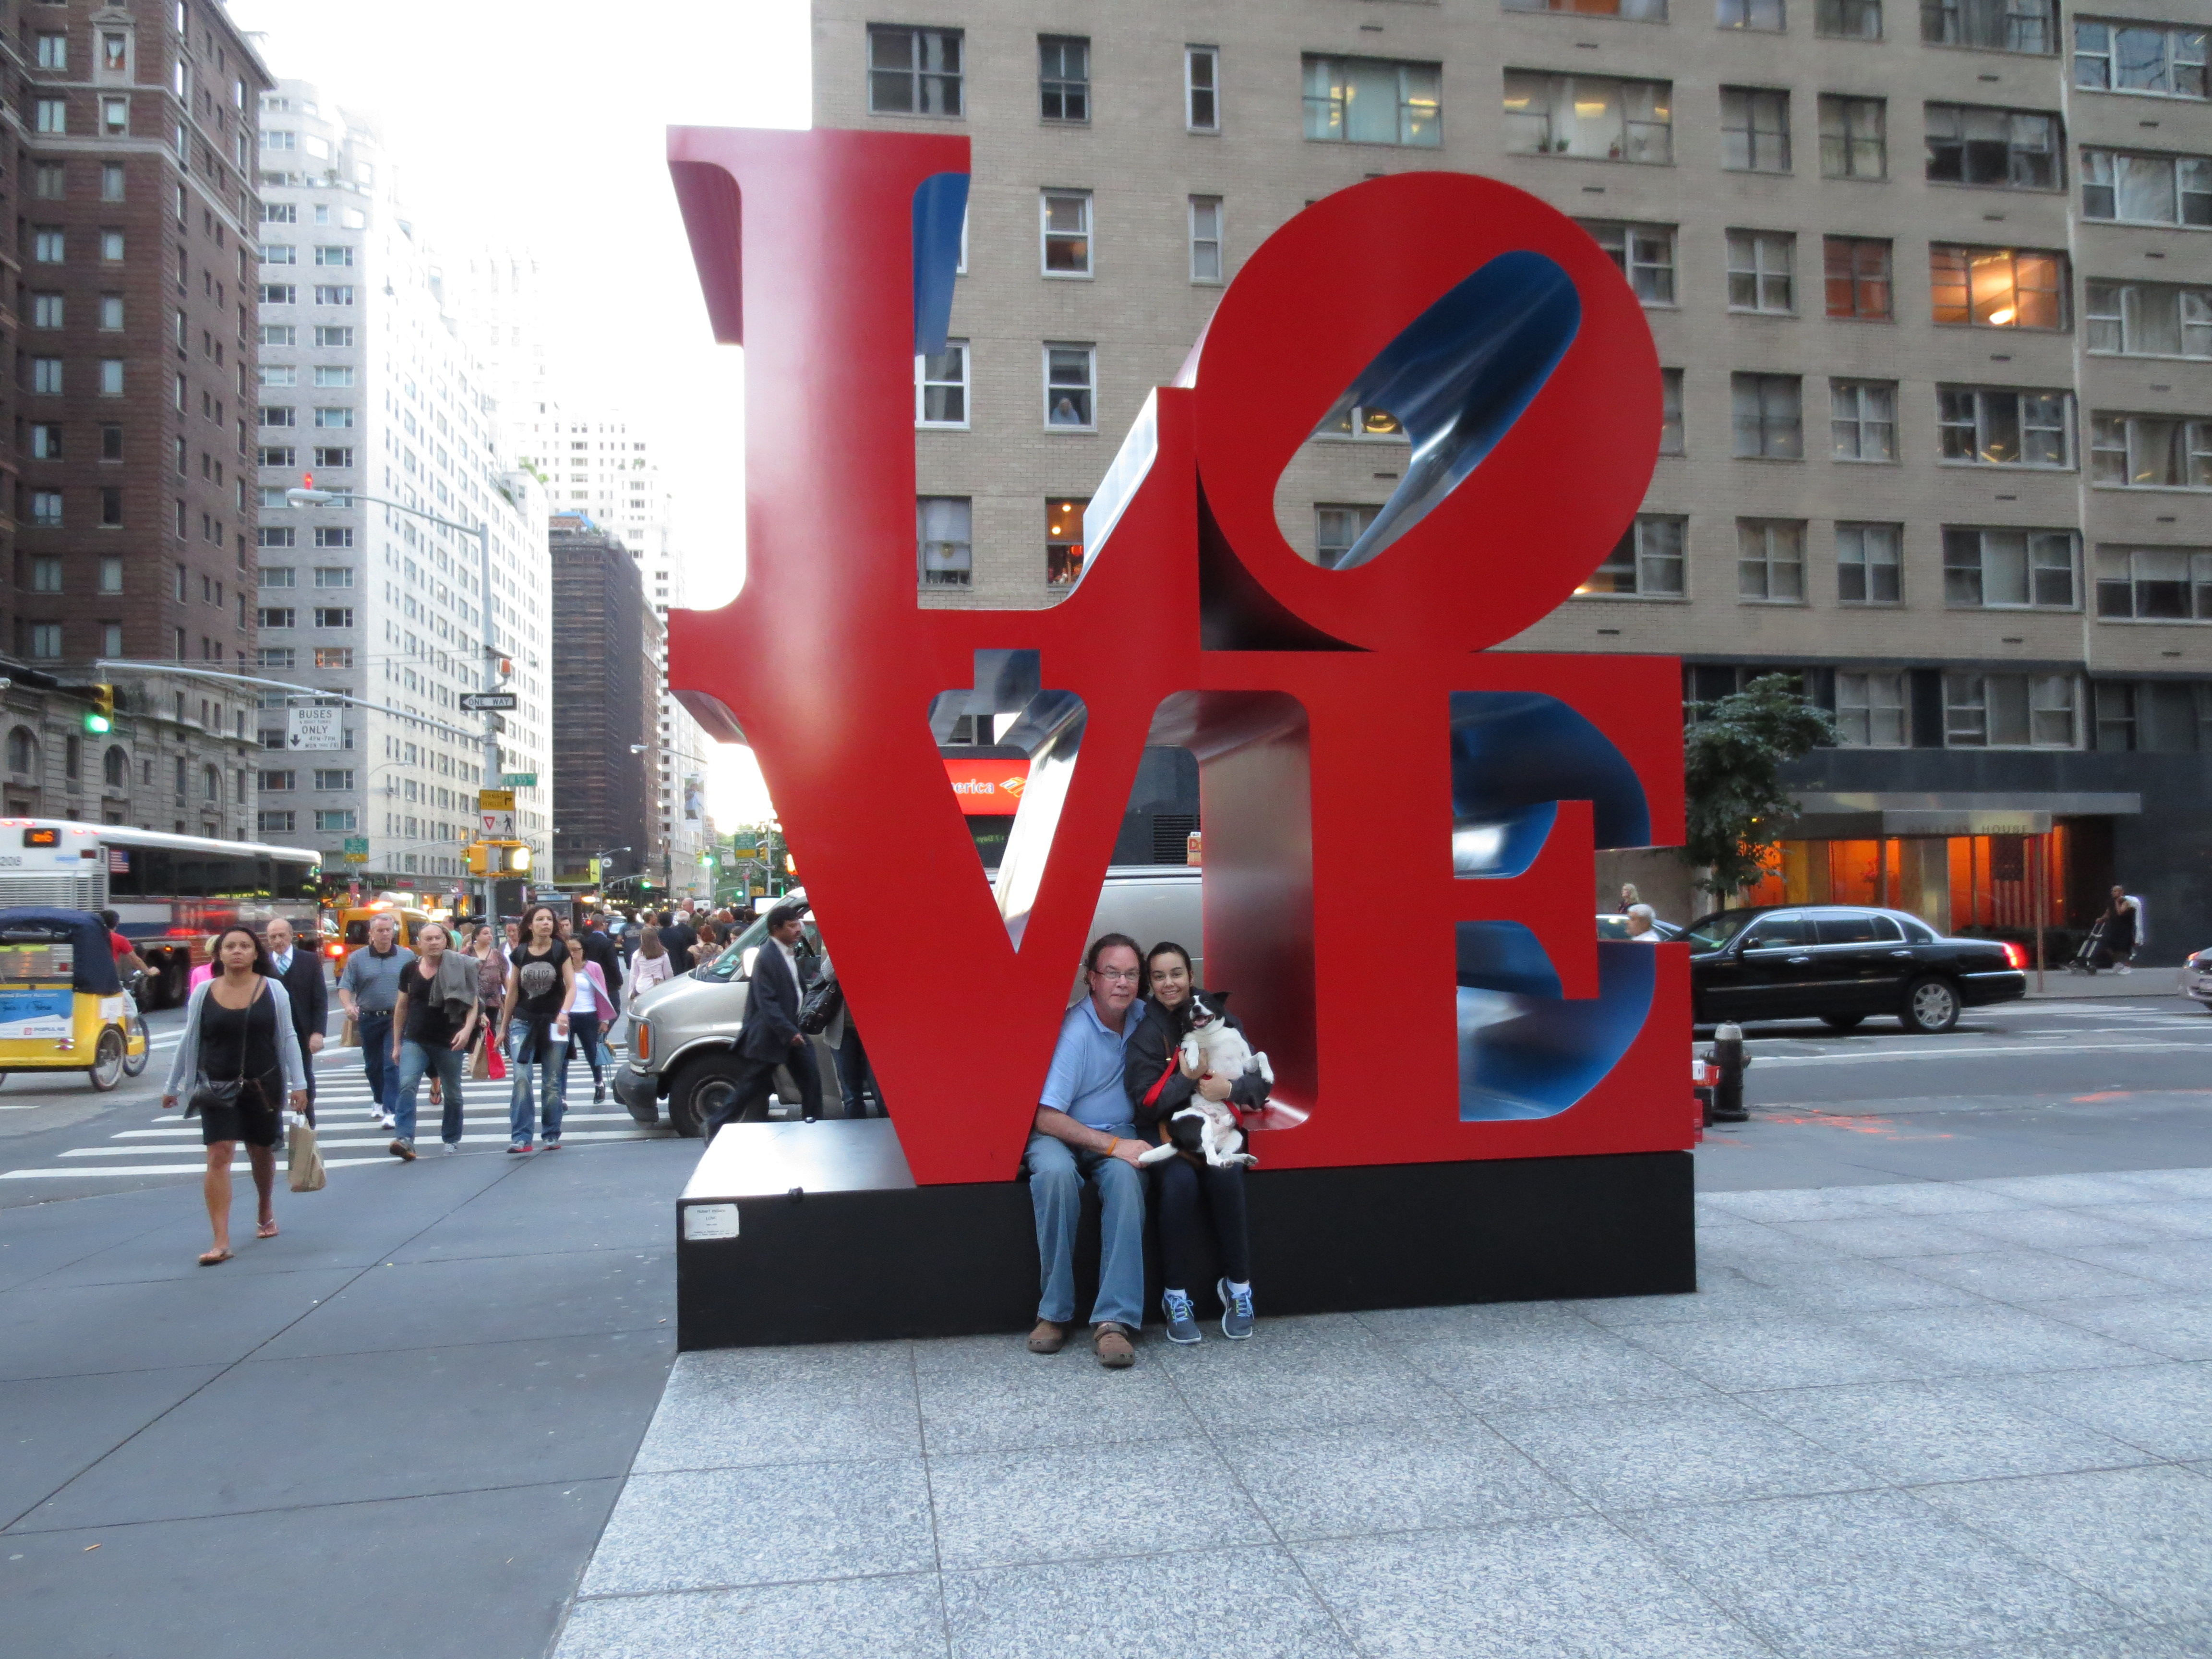 Jillian and George in NY